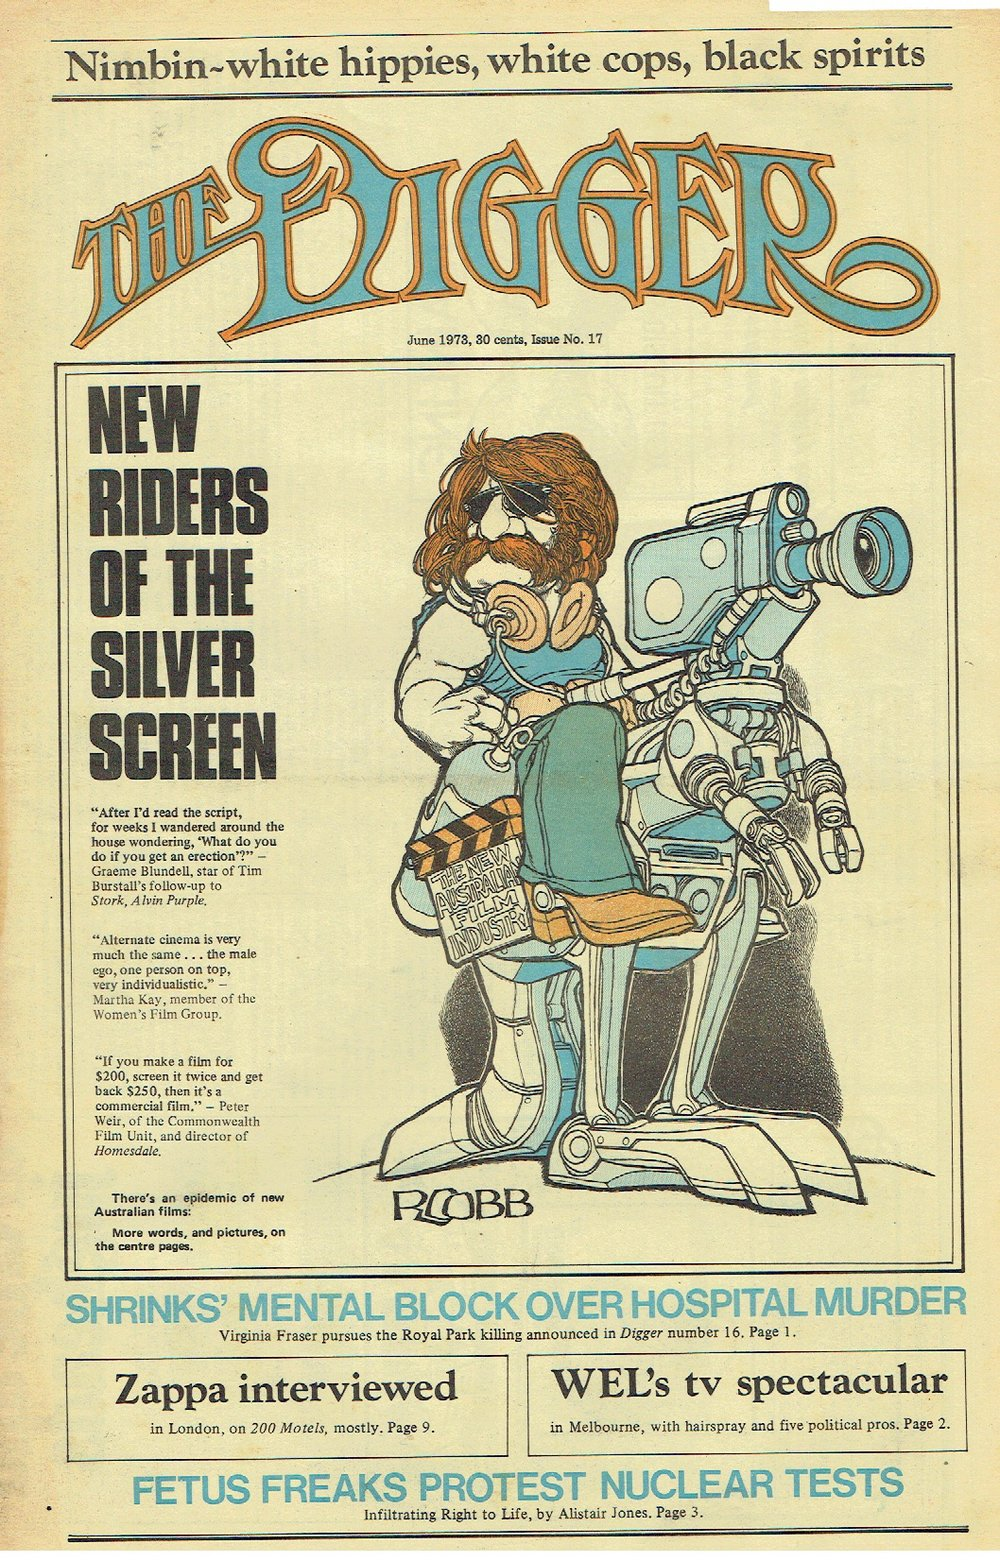 A 1973 cover page of The Digger, the magazine in which Helen Garner made her (fateful) reporting debut